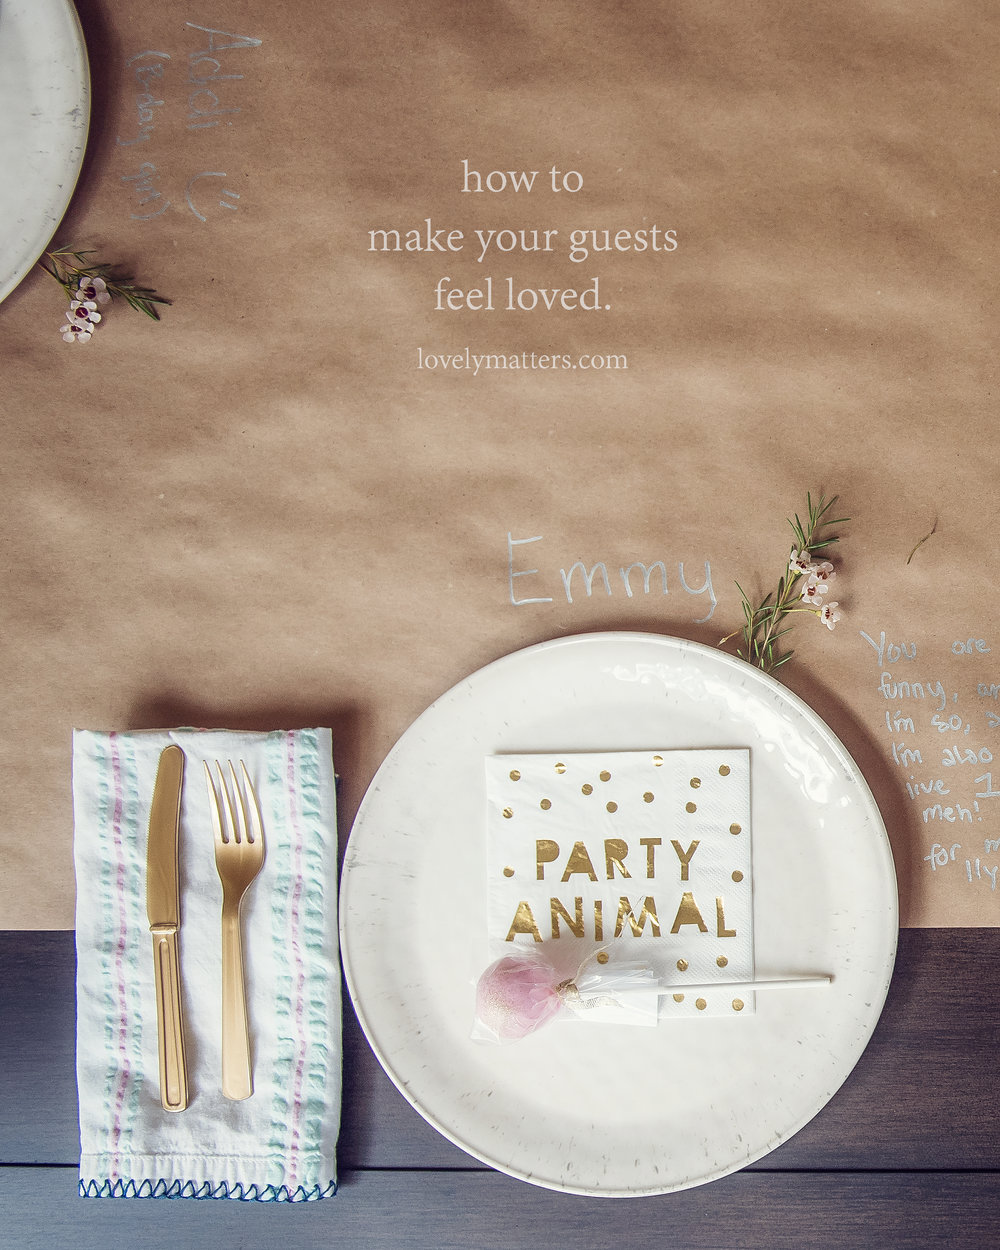 simple and thoughtful party decor. lovely matters by Heather Walker